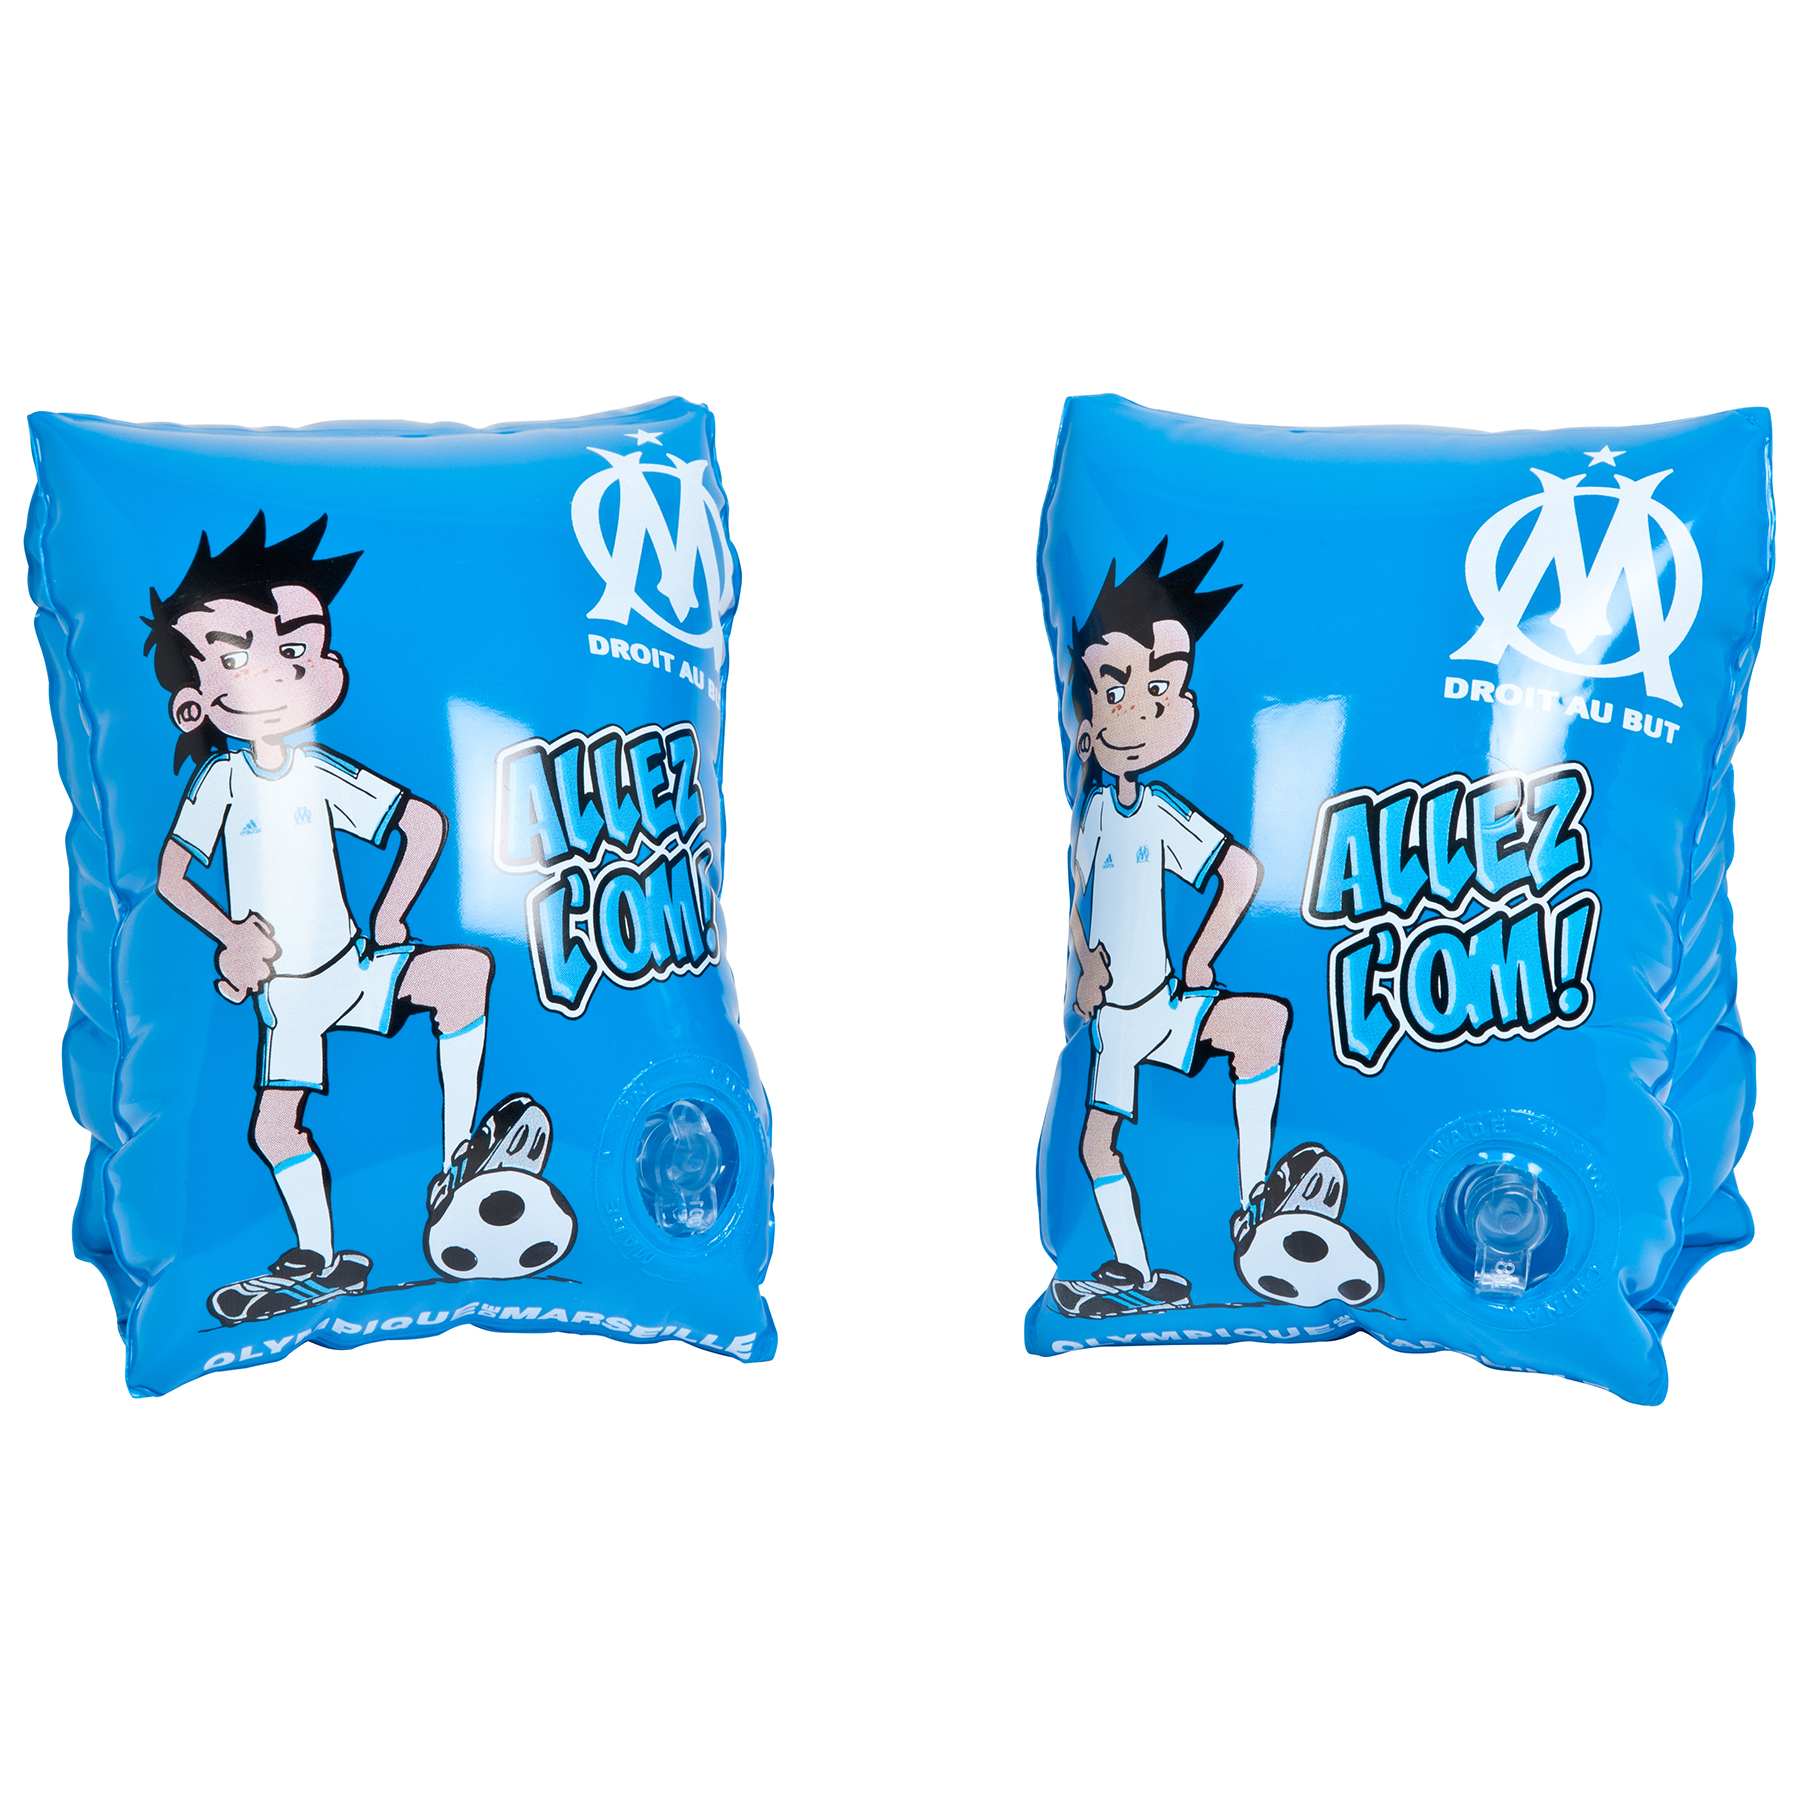 Olympique de Marseille Armbands Pack of 2